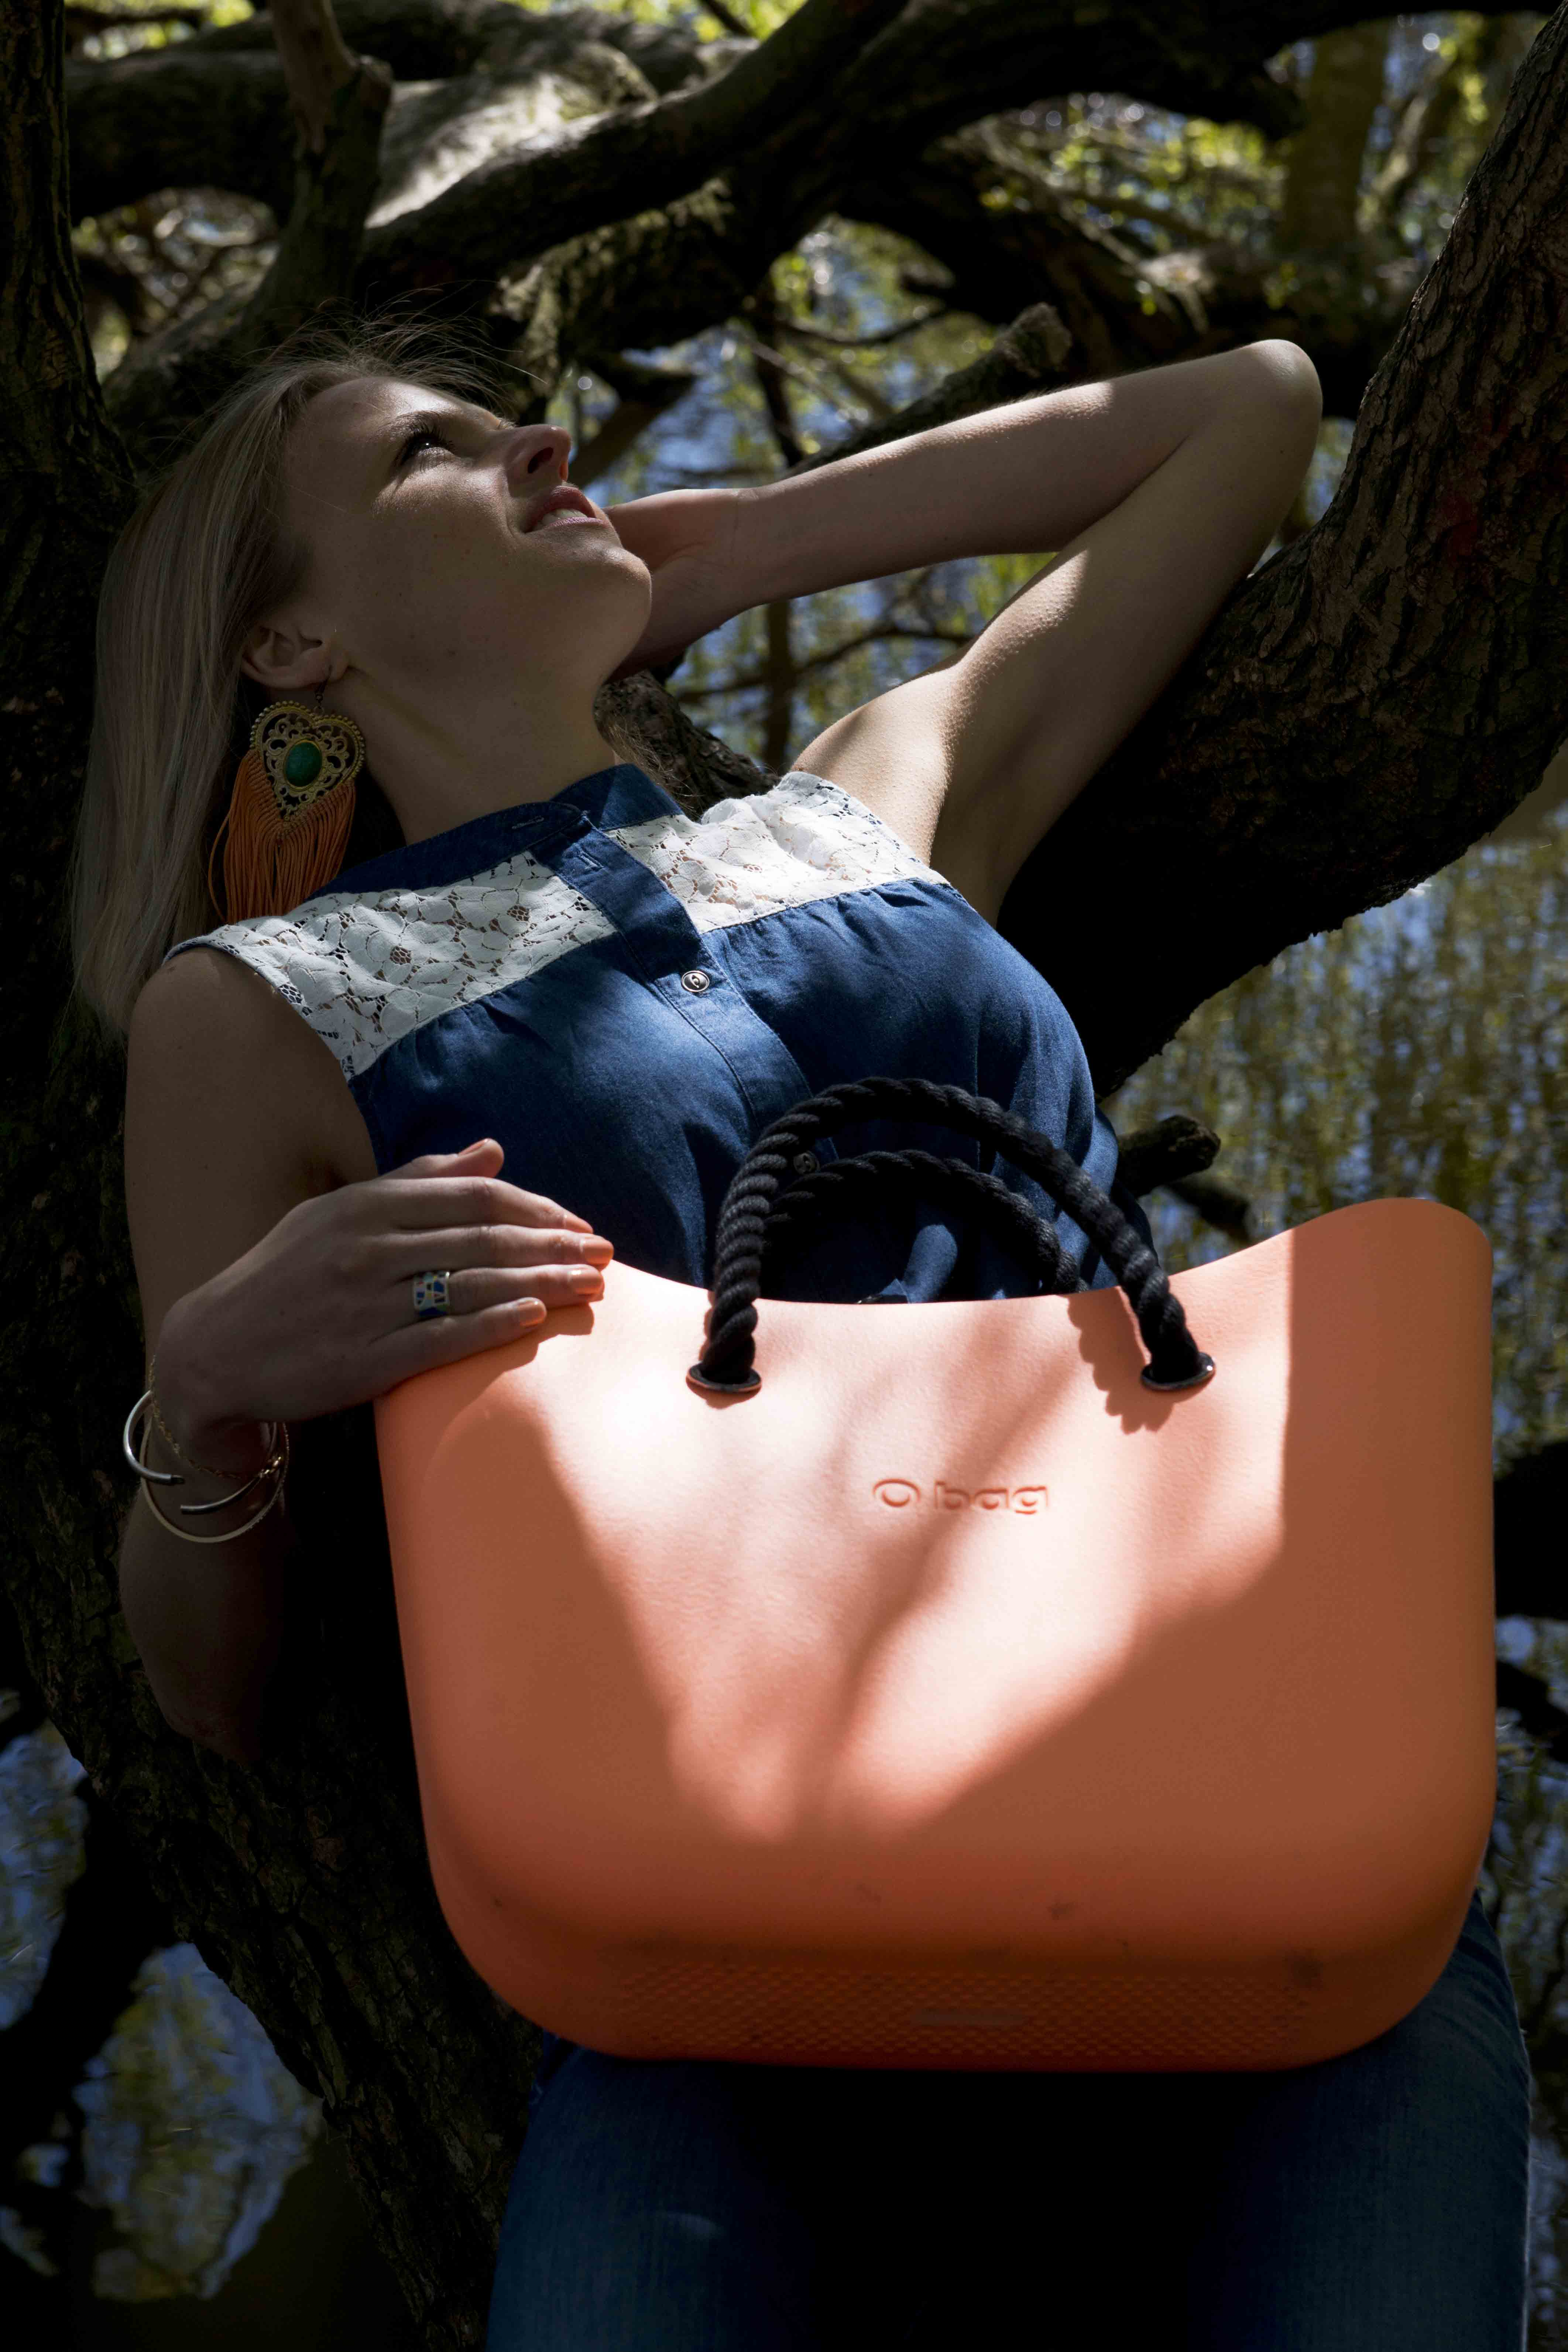 Bag at You - Kingsday - Koningsdag 2015 - O Bag - Fashion Blog - Thinking of the perfect bag